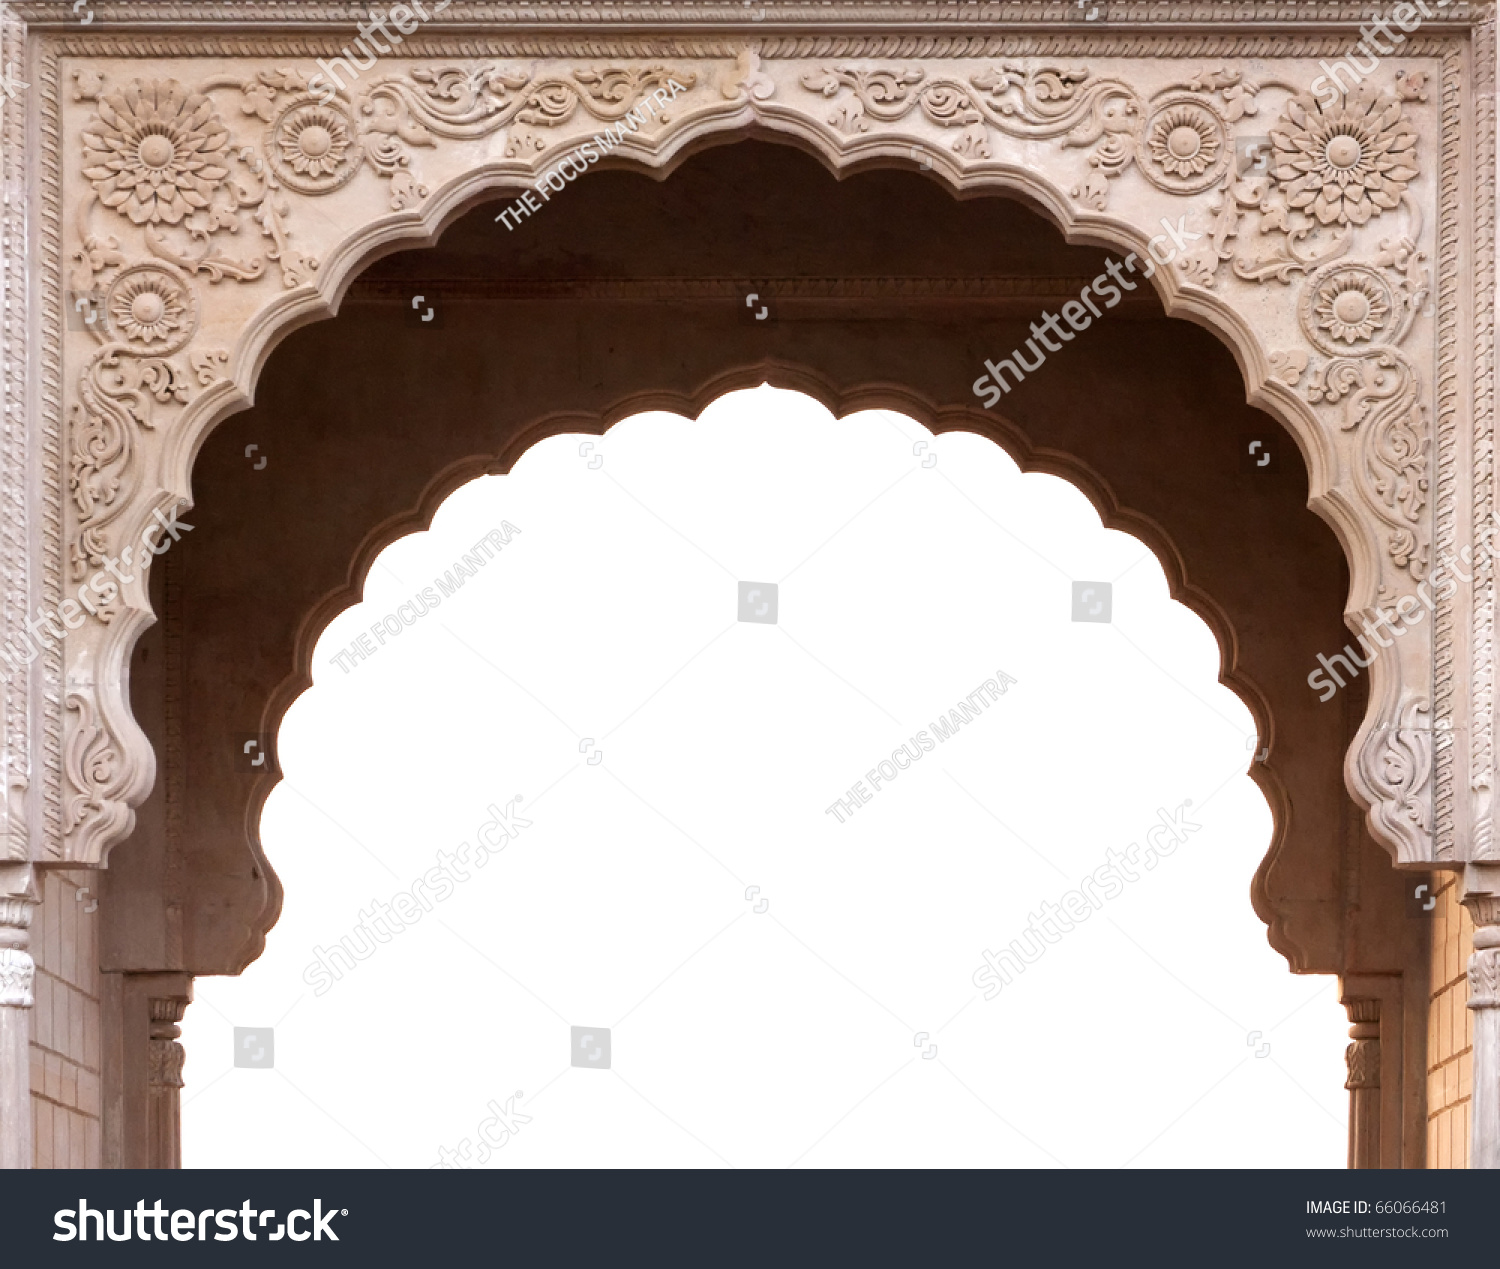 Temple arch entrance india stock photo safe to use 66066481 temple arch entrance in india thecheapjerseys Images